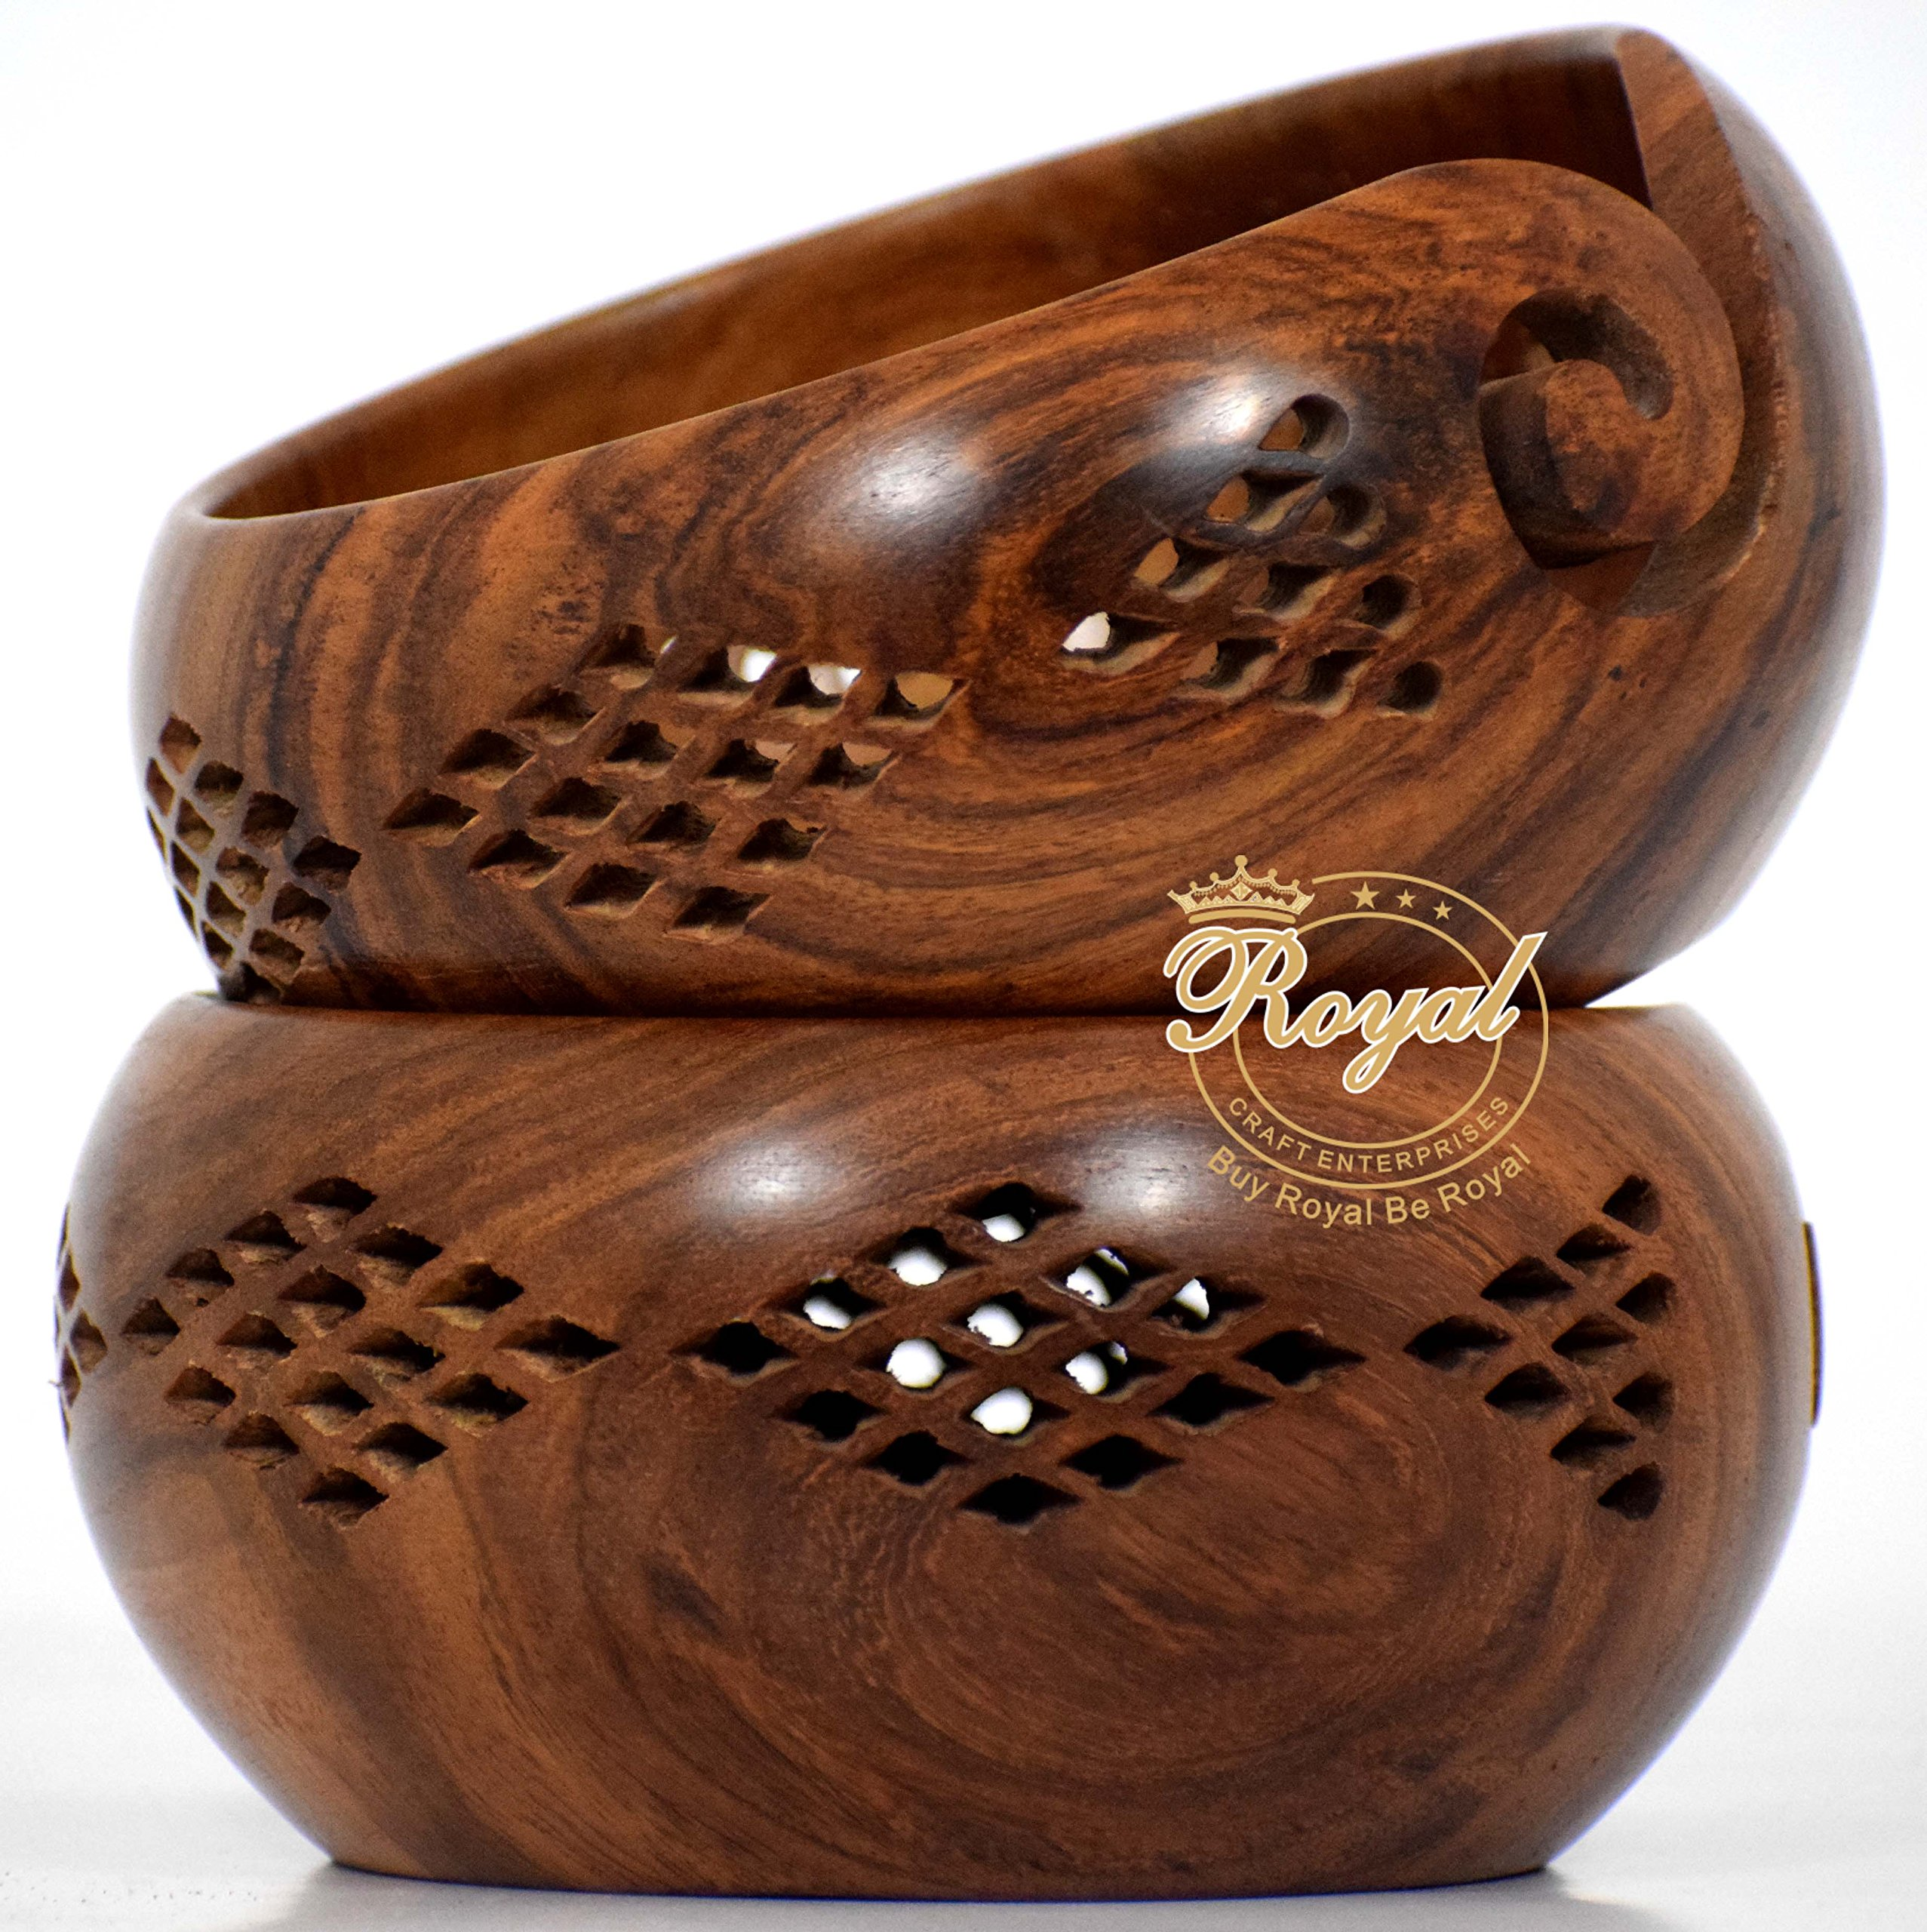 Rosewood crafted wooden yarn storage bowl knitting crochet accessories With Carved Holes & Drills Royal Craft Enterprises (7 X 7 X 4 inch)